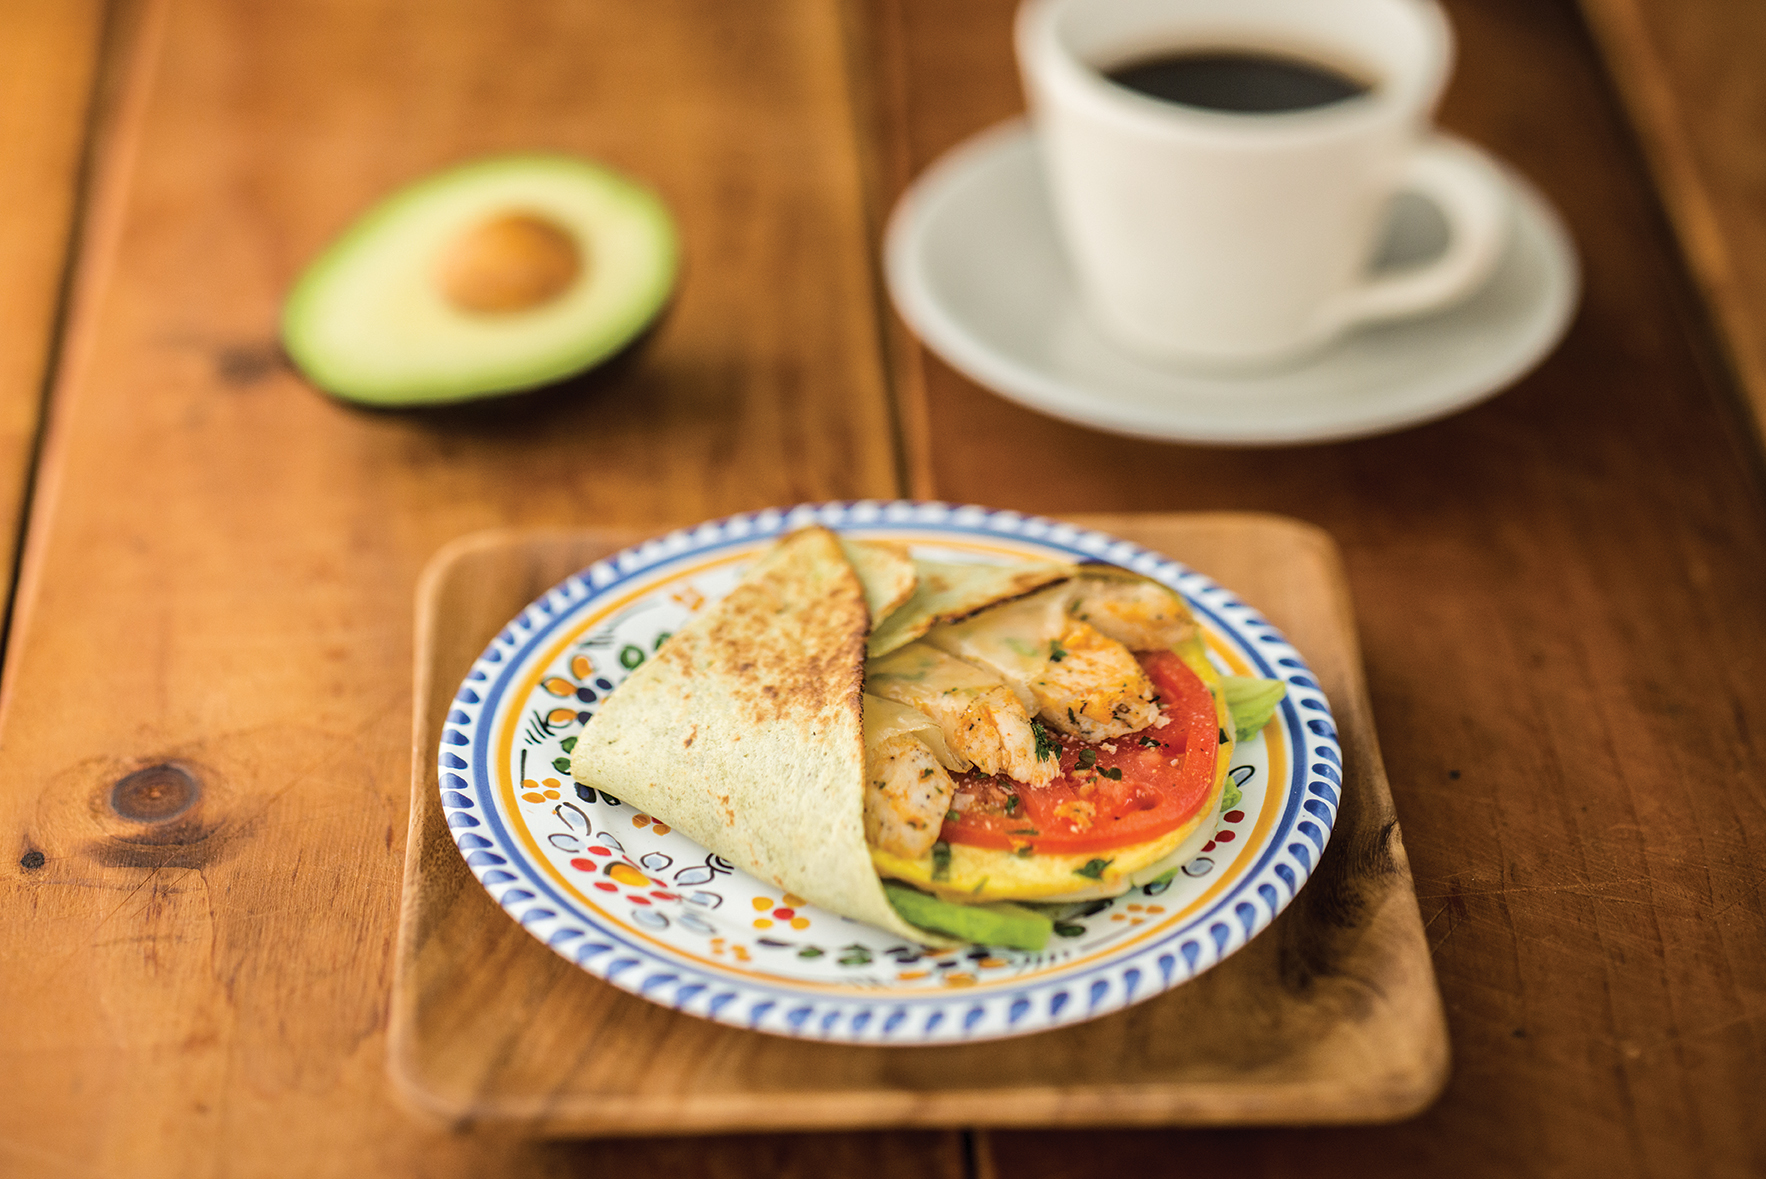 Breakfast Wrap, smoked chicken and avocado